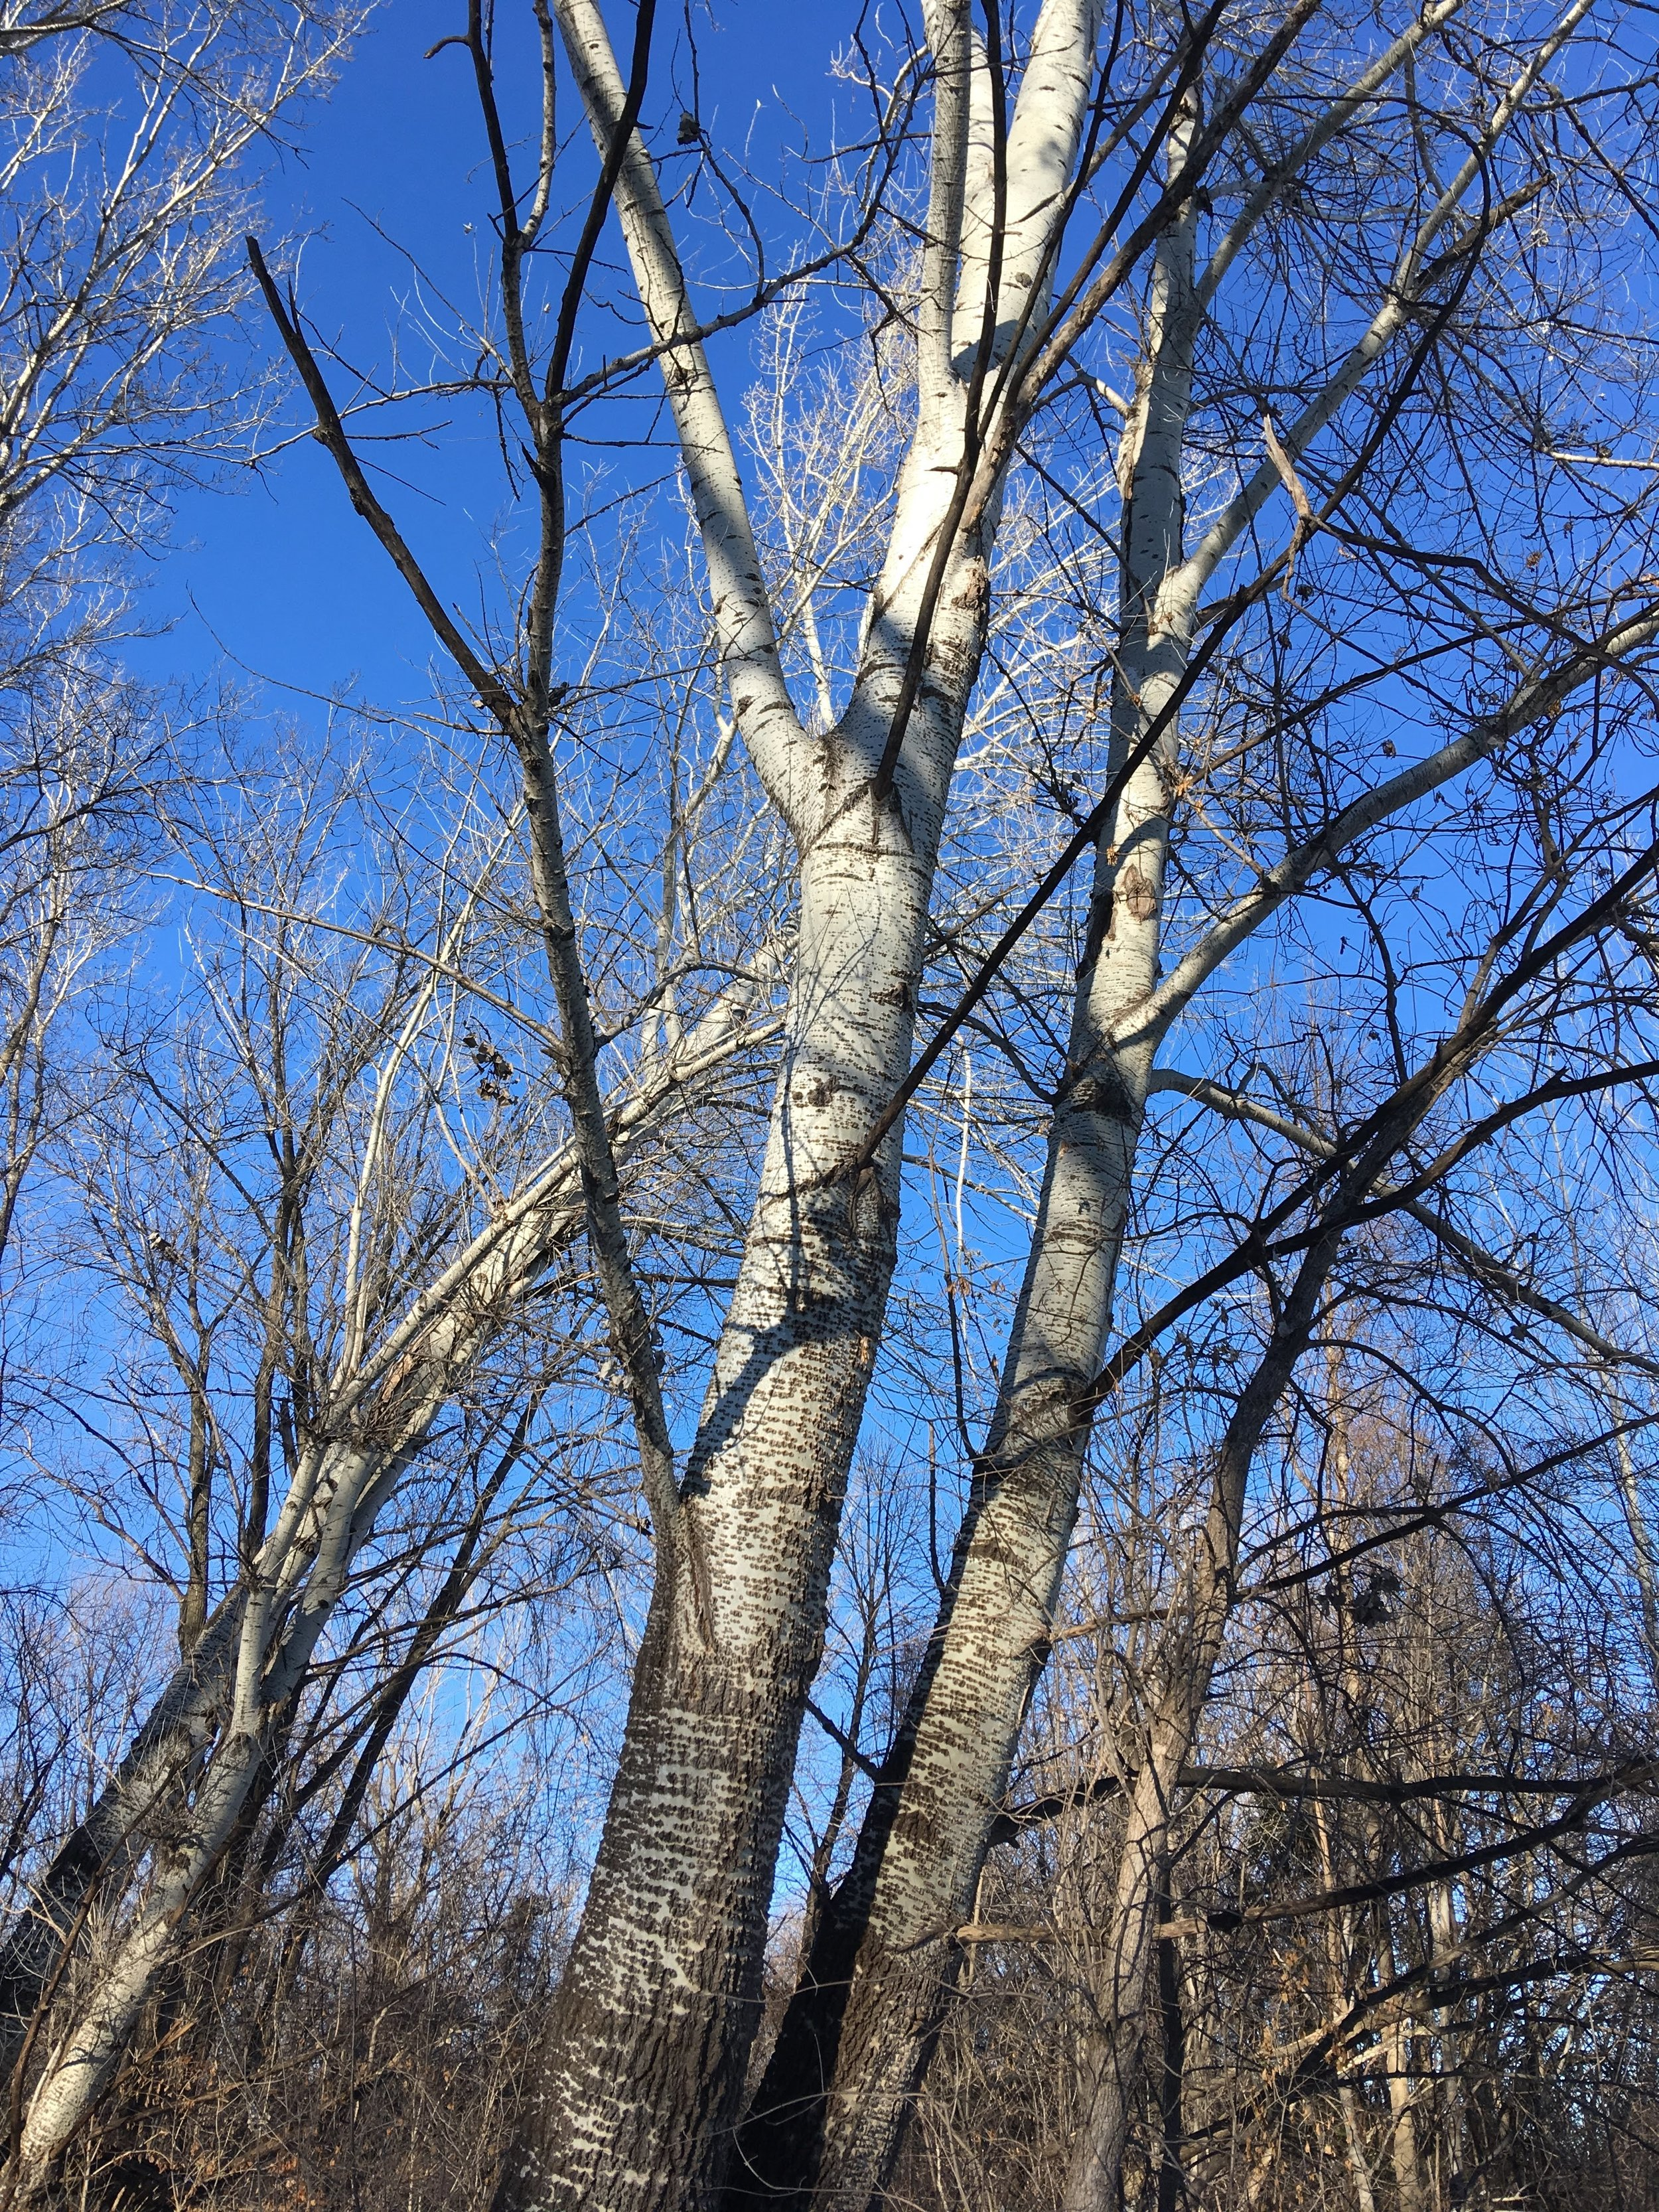 The bark of quaking aspen ( Populus tremuloides ) is bright white at the top and grey with thick furrows at the base of older trees.